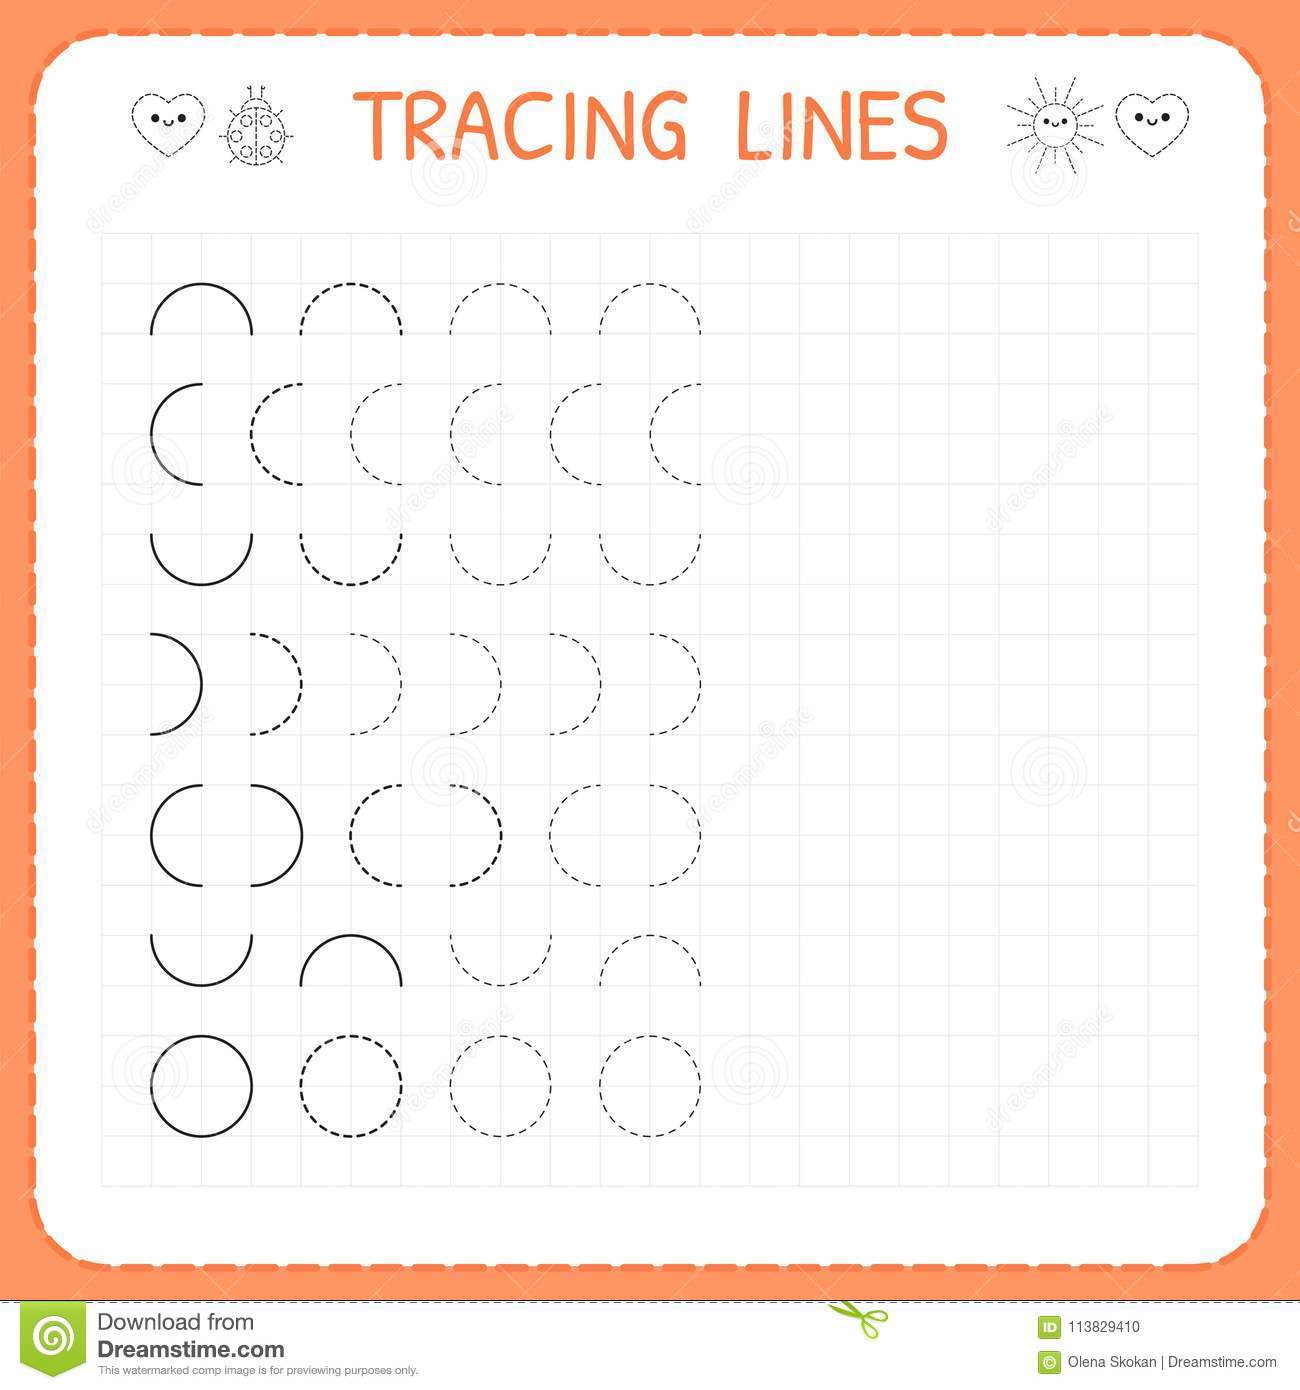 photograph relating to Tracing Lines Worksheets Printable called Tracing Traces. Worksheet For Small children. Uncomplicated Producing. Operating